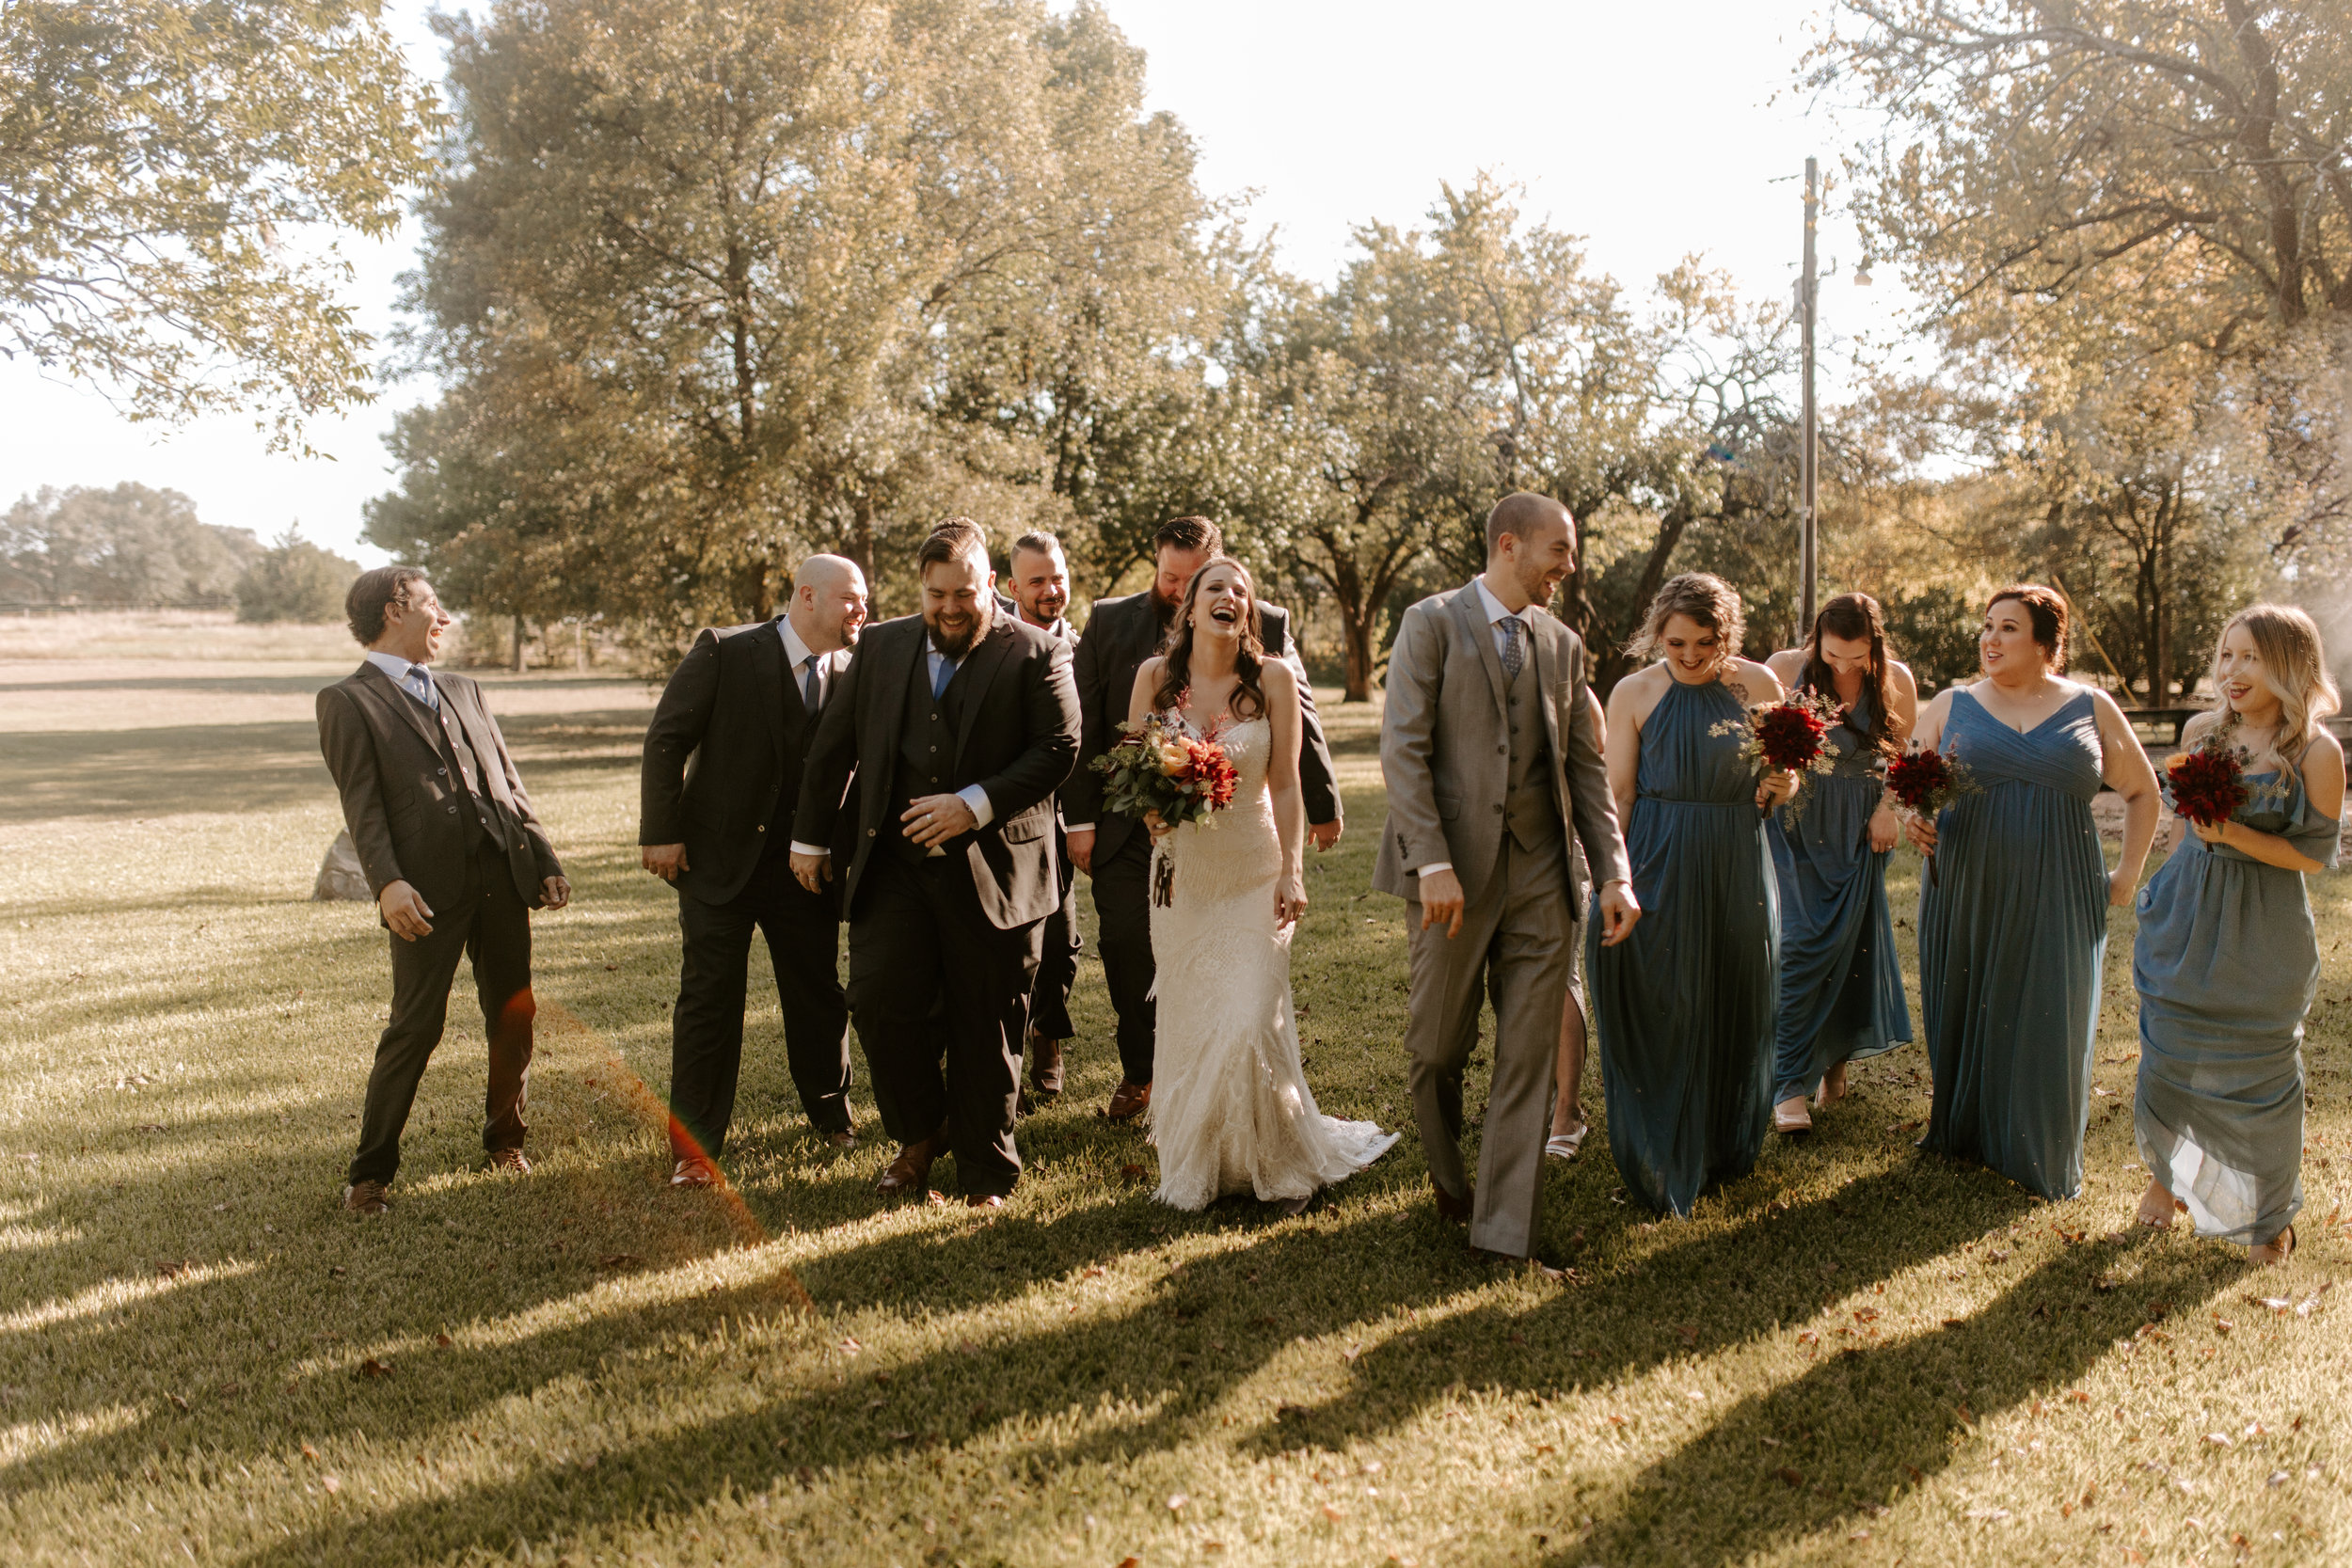 Worley Wedding - Arden and Eric - Wedding Photos - Sneak Peek -Meme Urbane Photography_.jpg